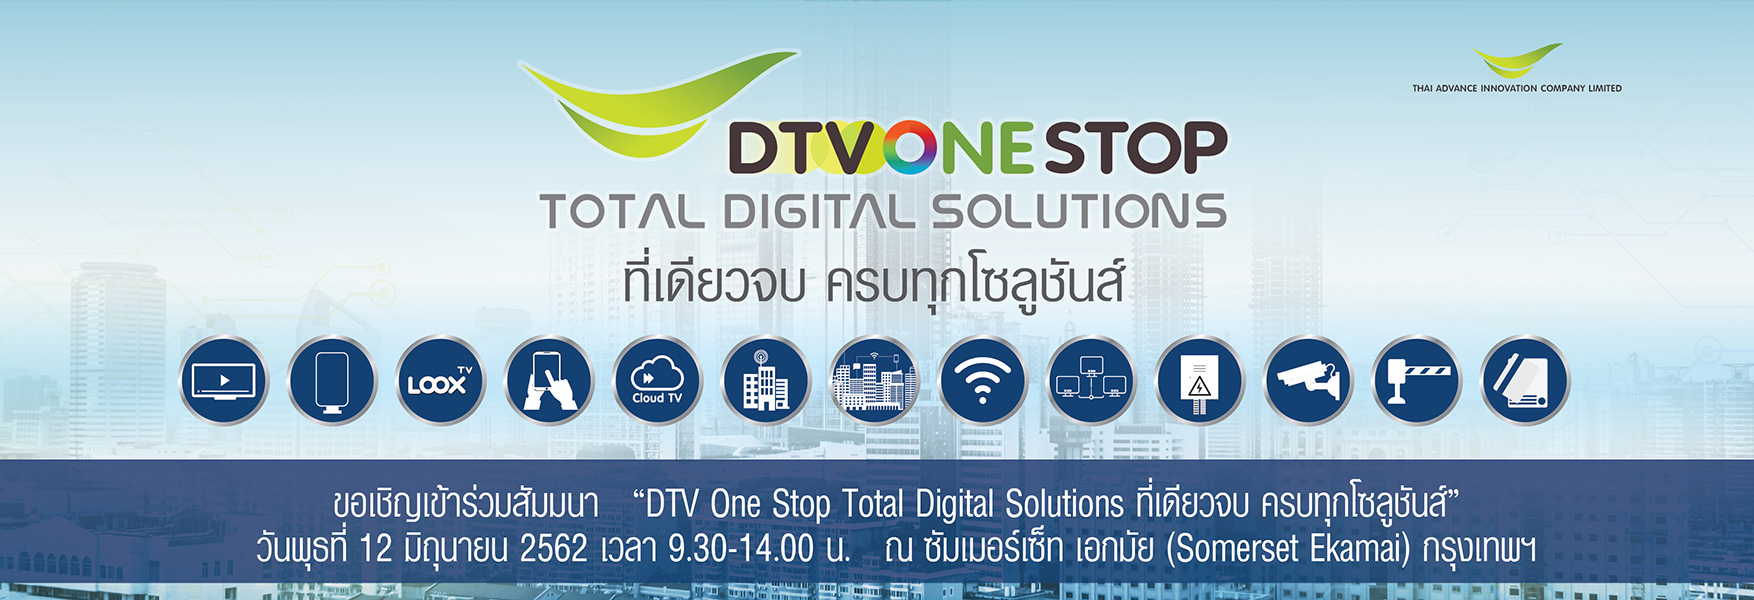 DTV ONE STOP Digital Solution